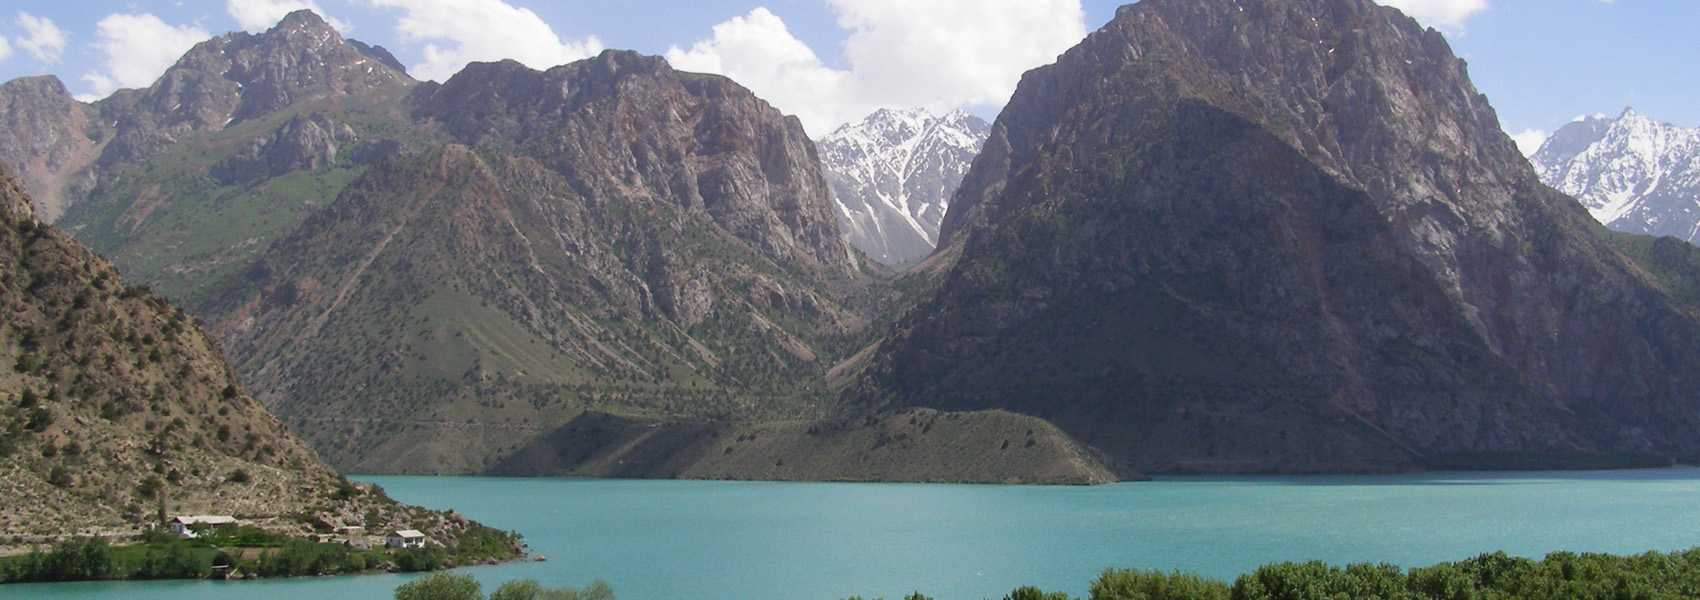 tajikistan-cutting-edge-of-adventure-travel